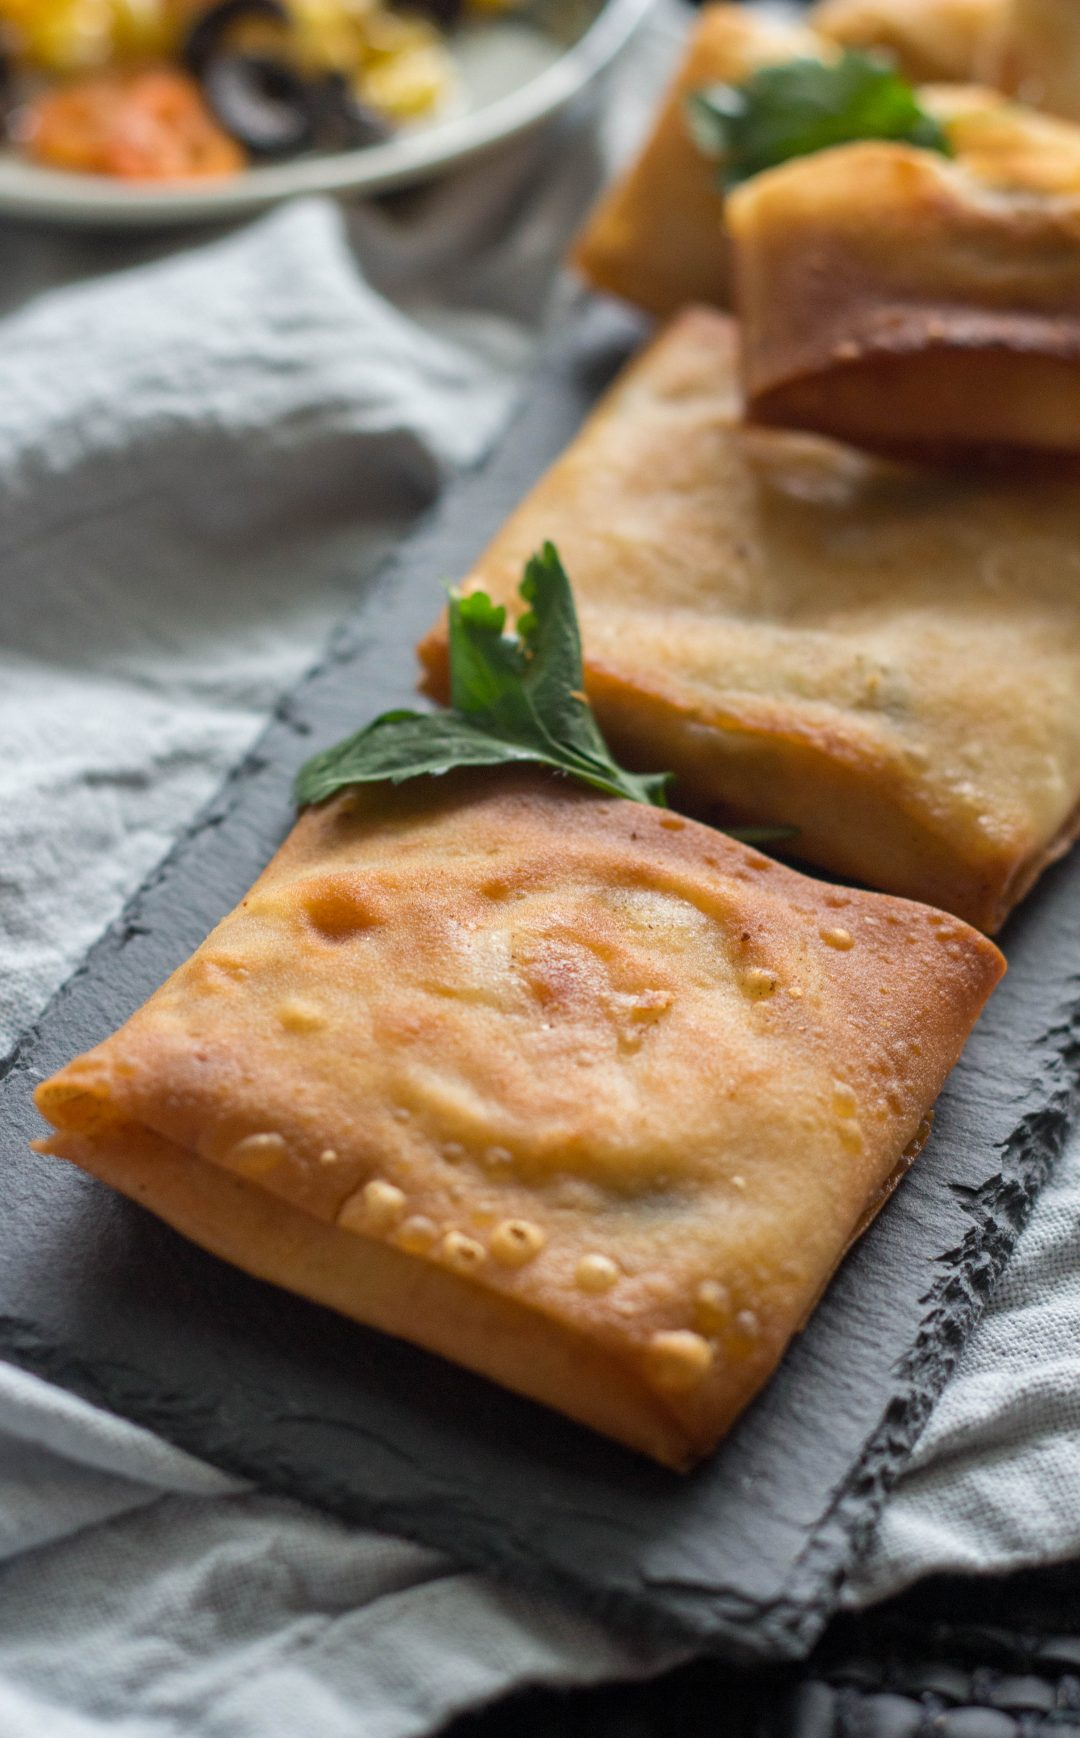 Box patties are a popular Pakistani snack, especially during Ramadan where they are served at Iftar time. Made with samosa sheets or spring roll wrappers they are filled with chicken, cheese and vegetables and fried till golden brown.